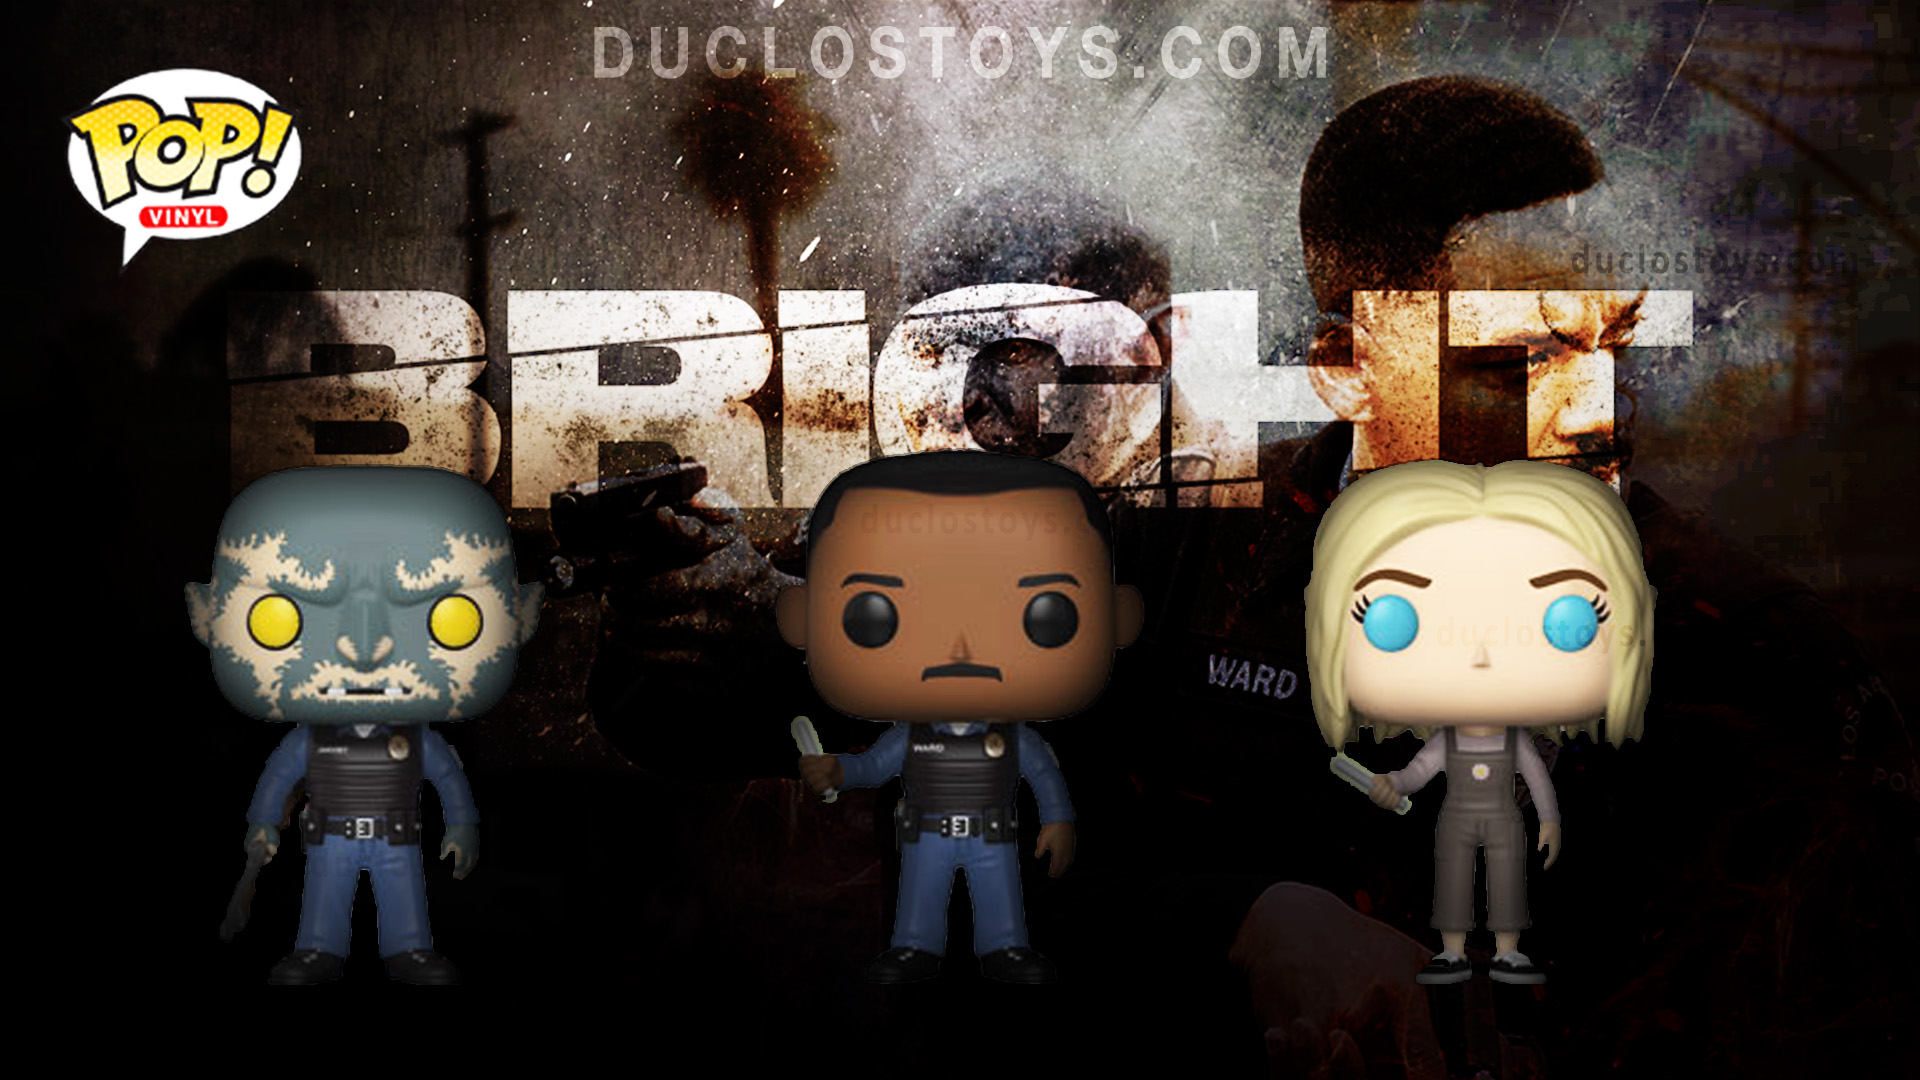 Duclos Toys Funko Pop Movies - Bright